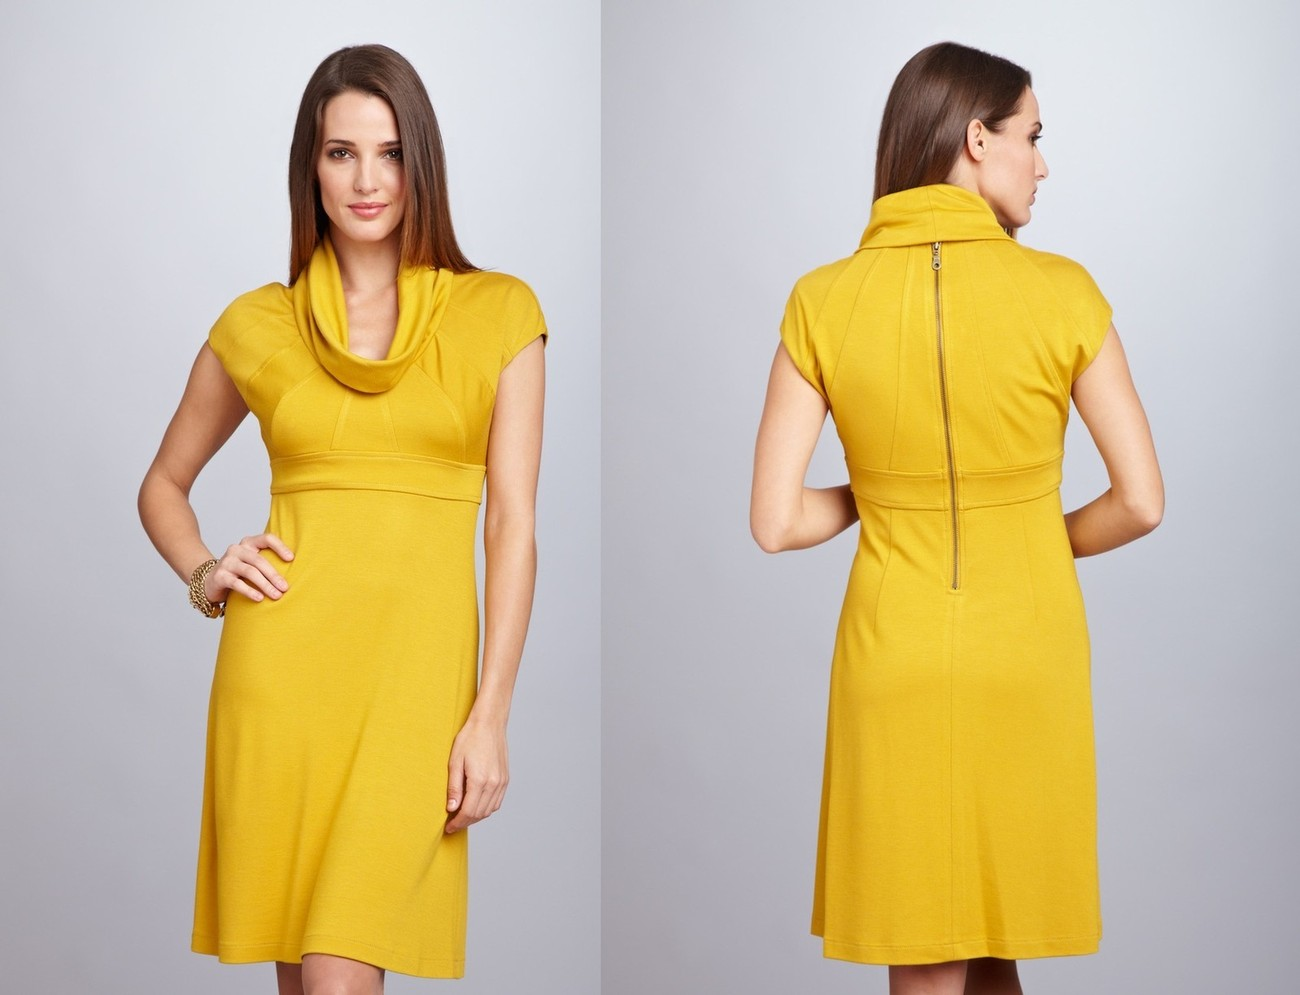 MUSE Cowl Neck Dress Sz 2 NWT $188